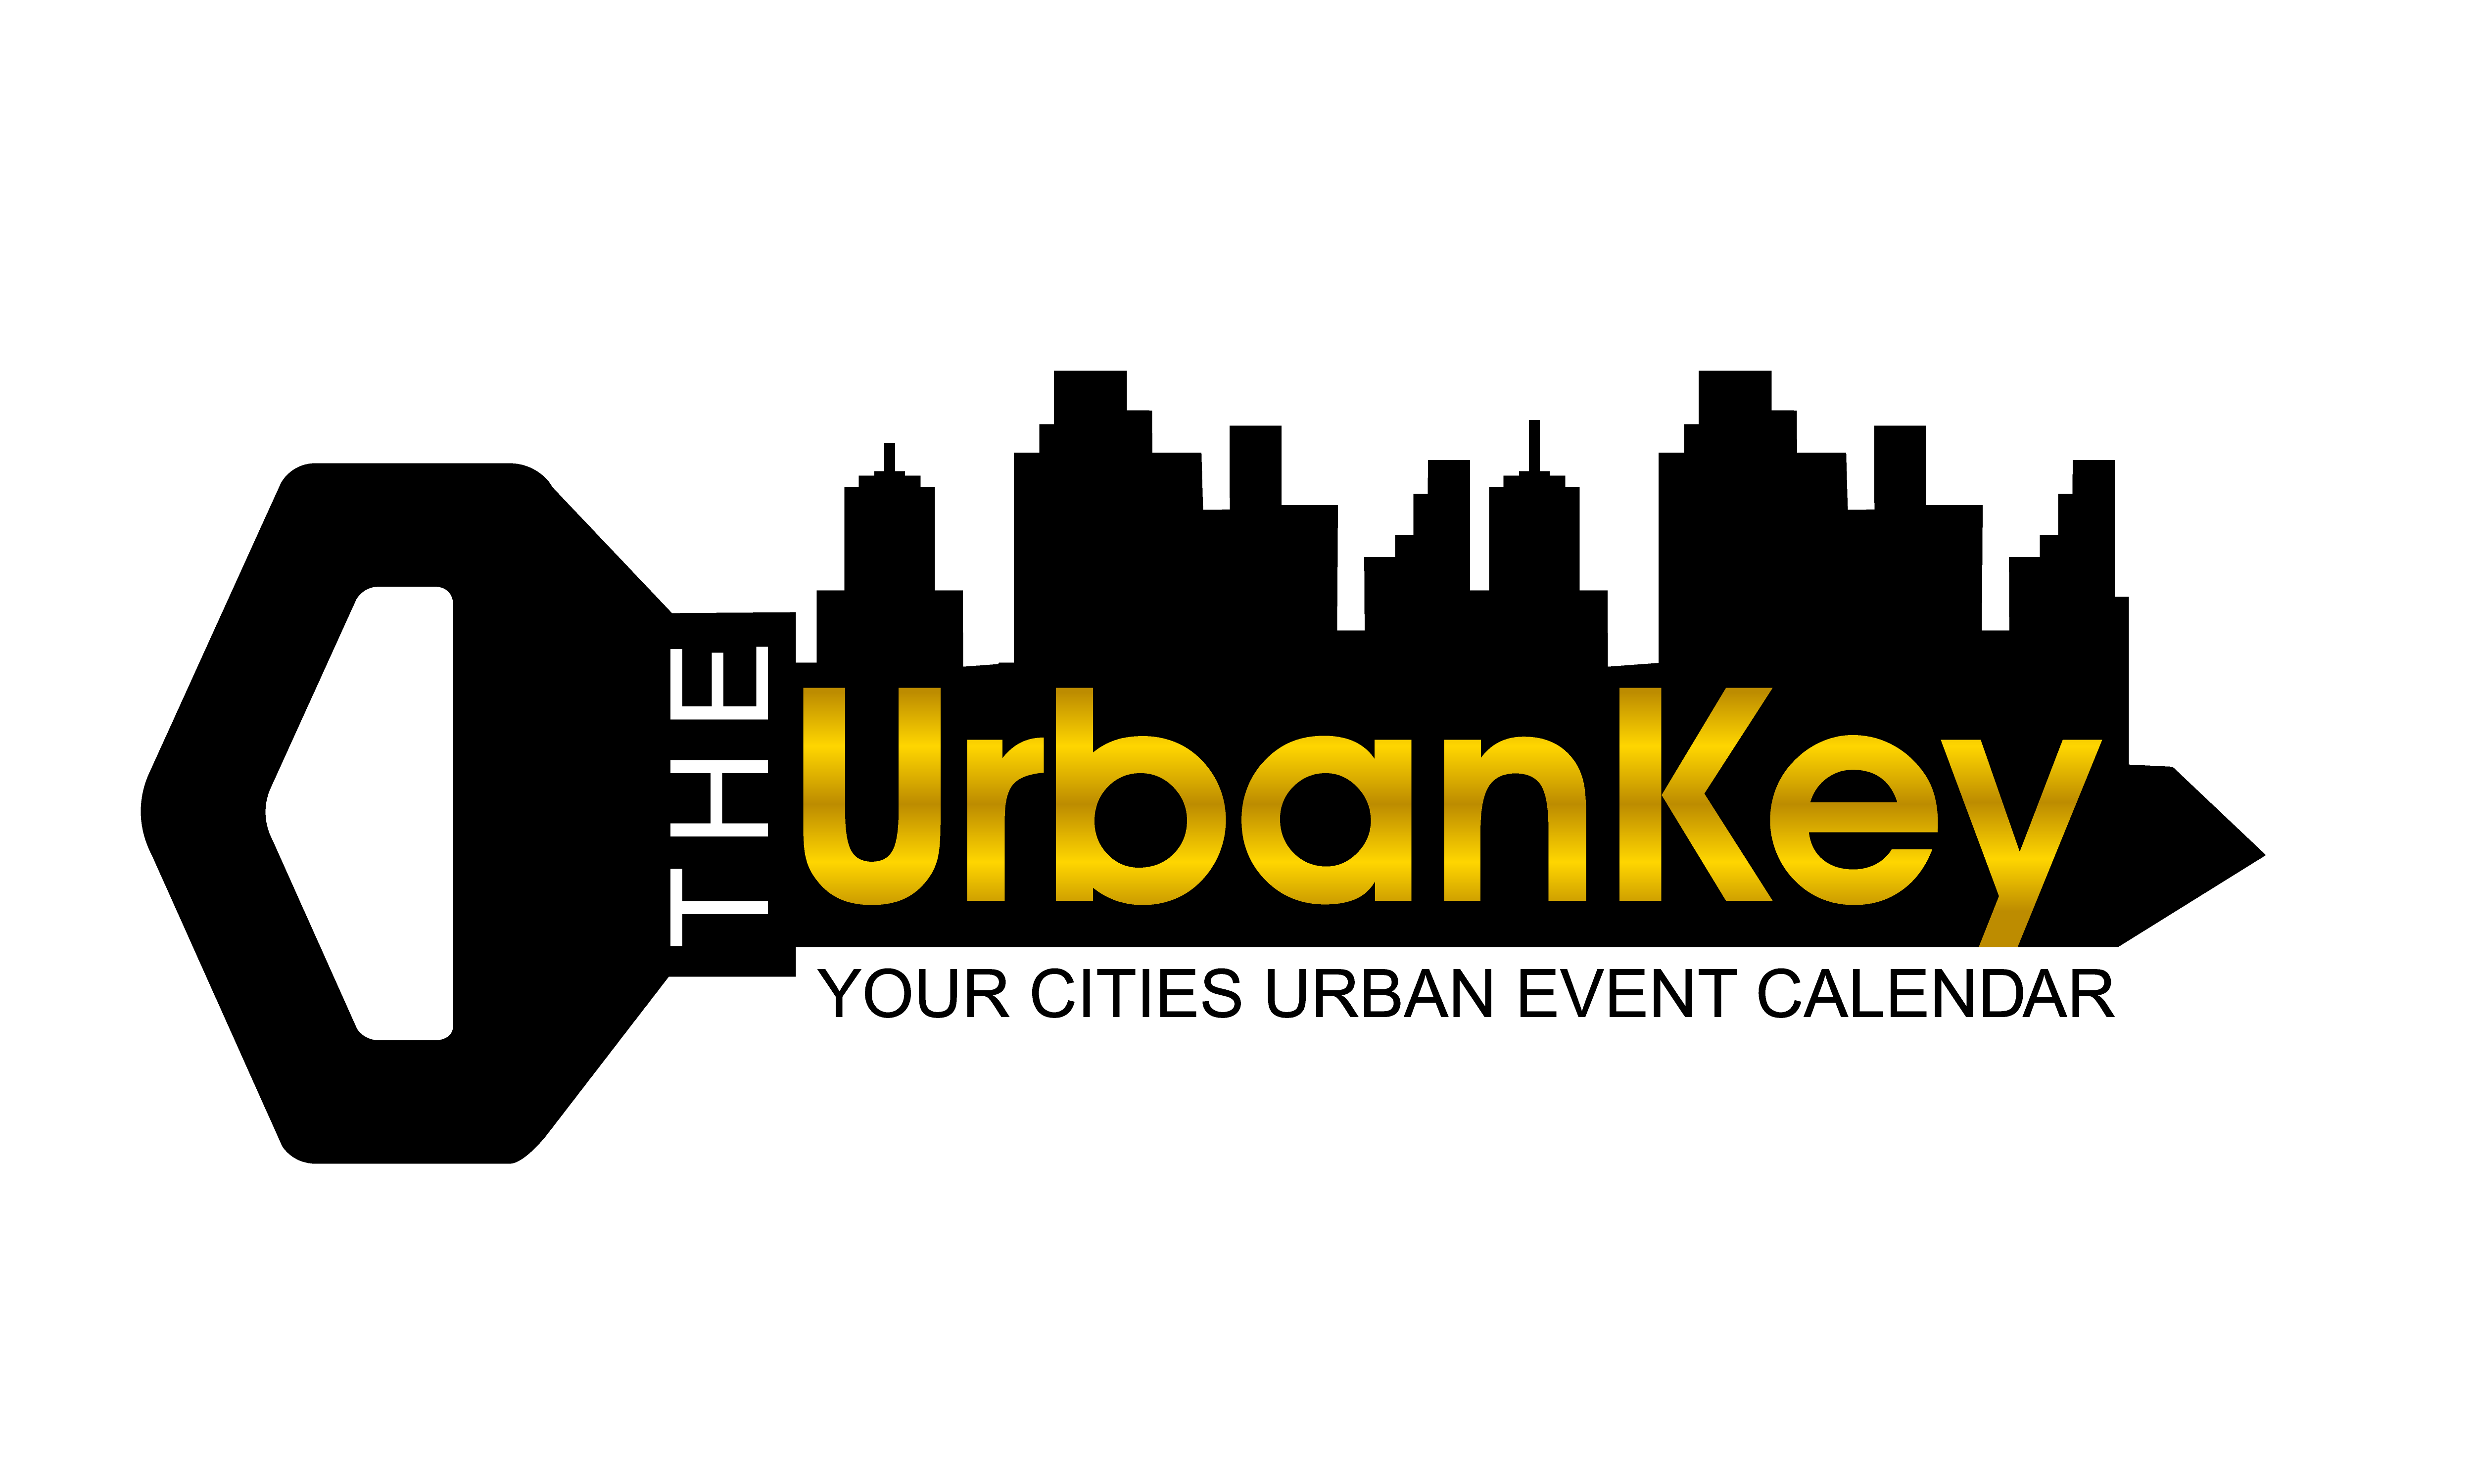 The Urban Key